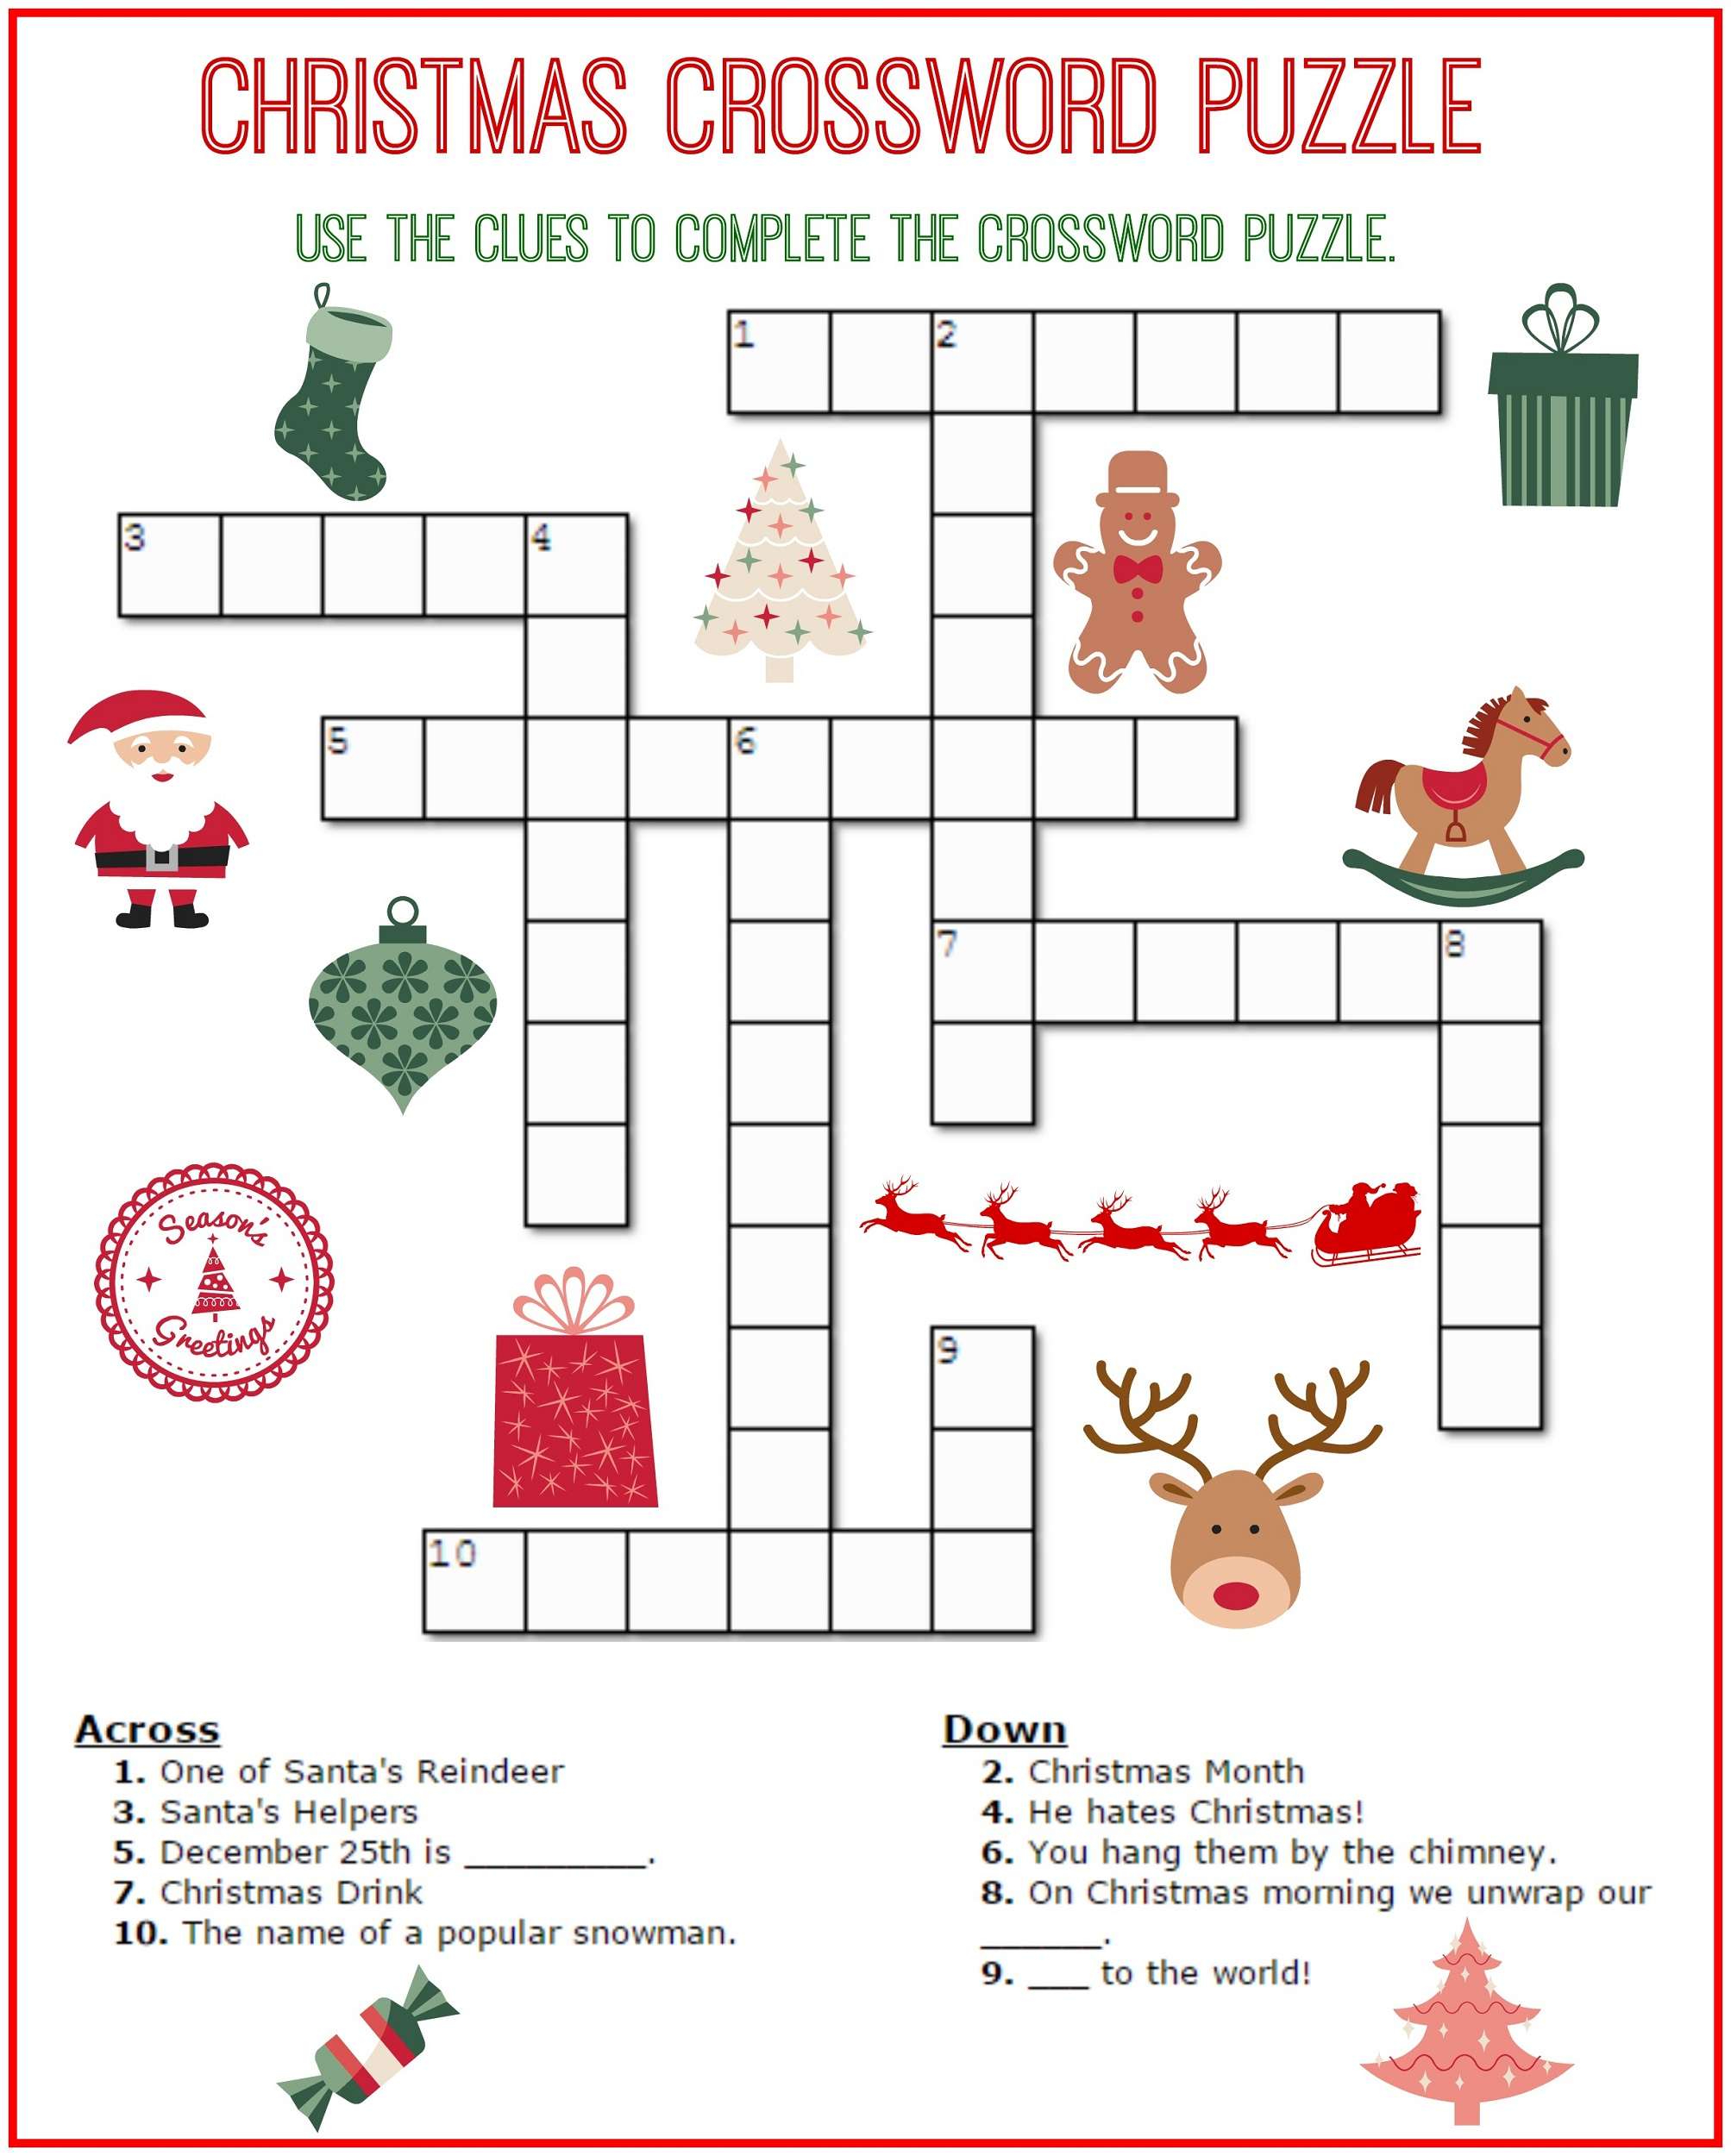 Crossword Puzzle Kids Printable 2017 | Kiddo Shelter - Free Easy - Printable Crossword Puzzles For 5 Year Olds